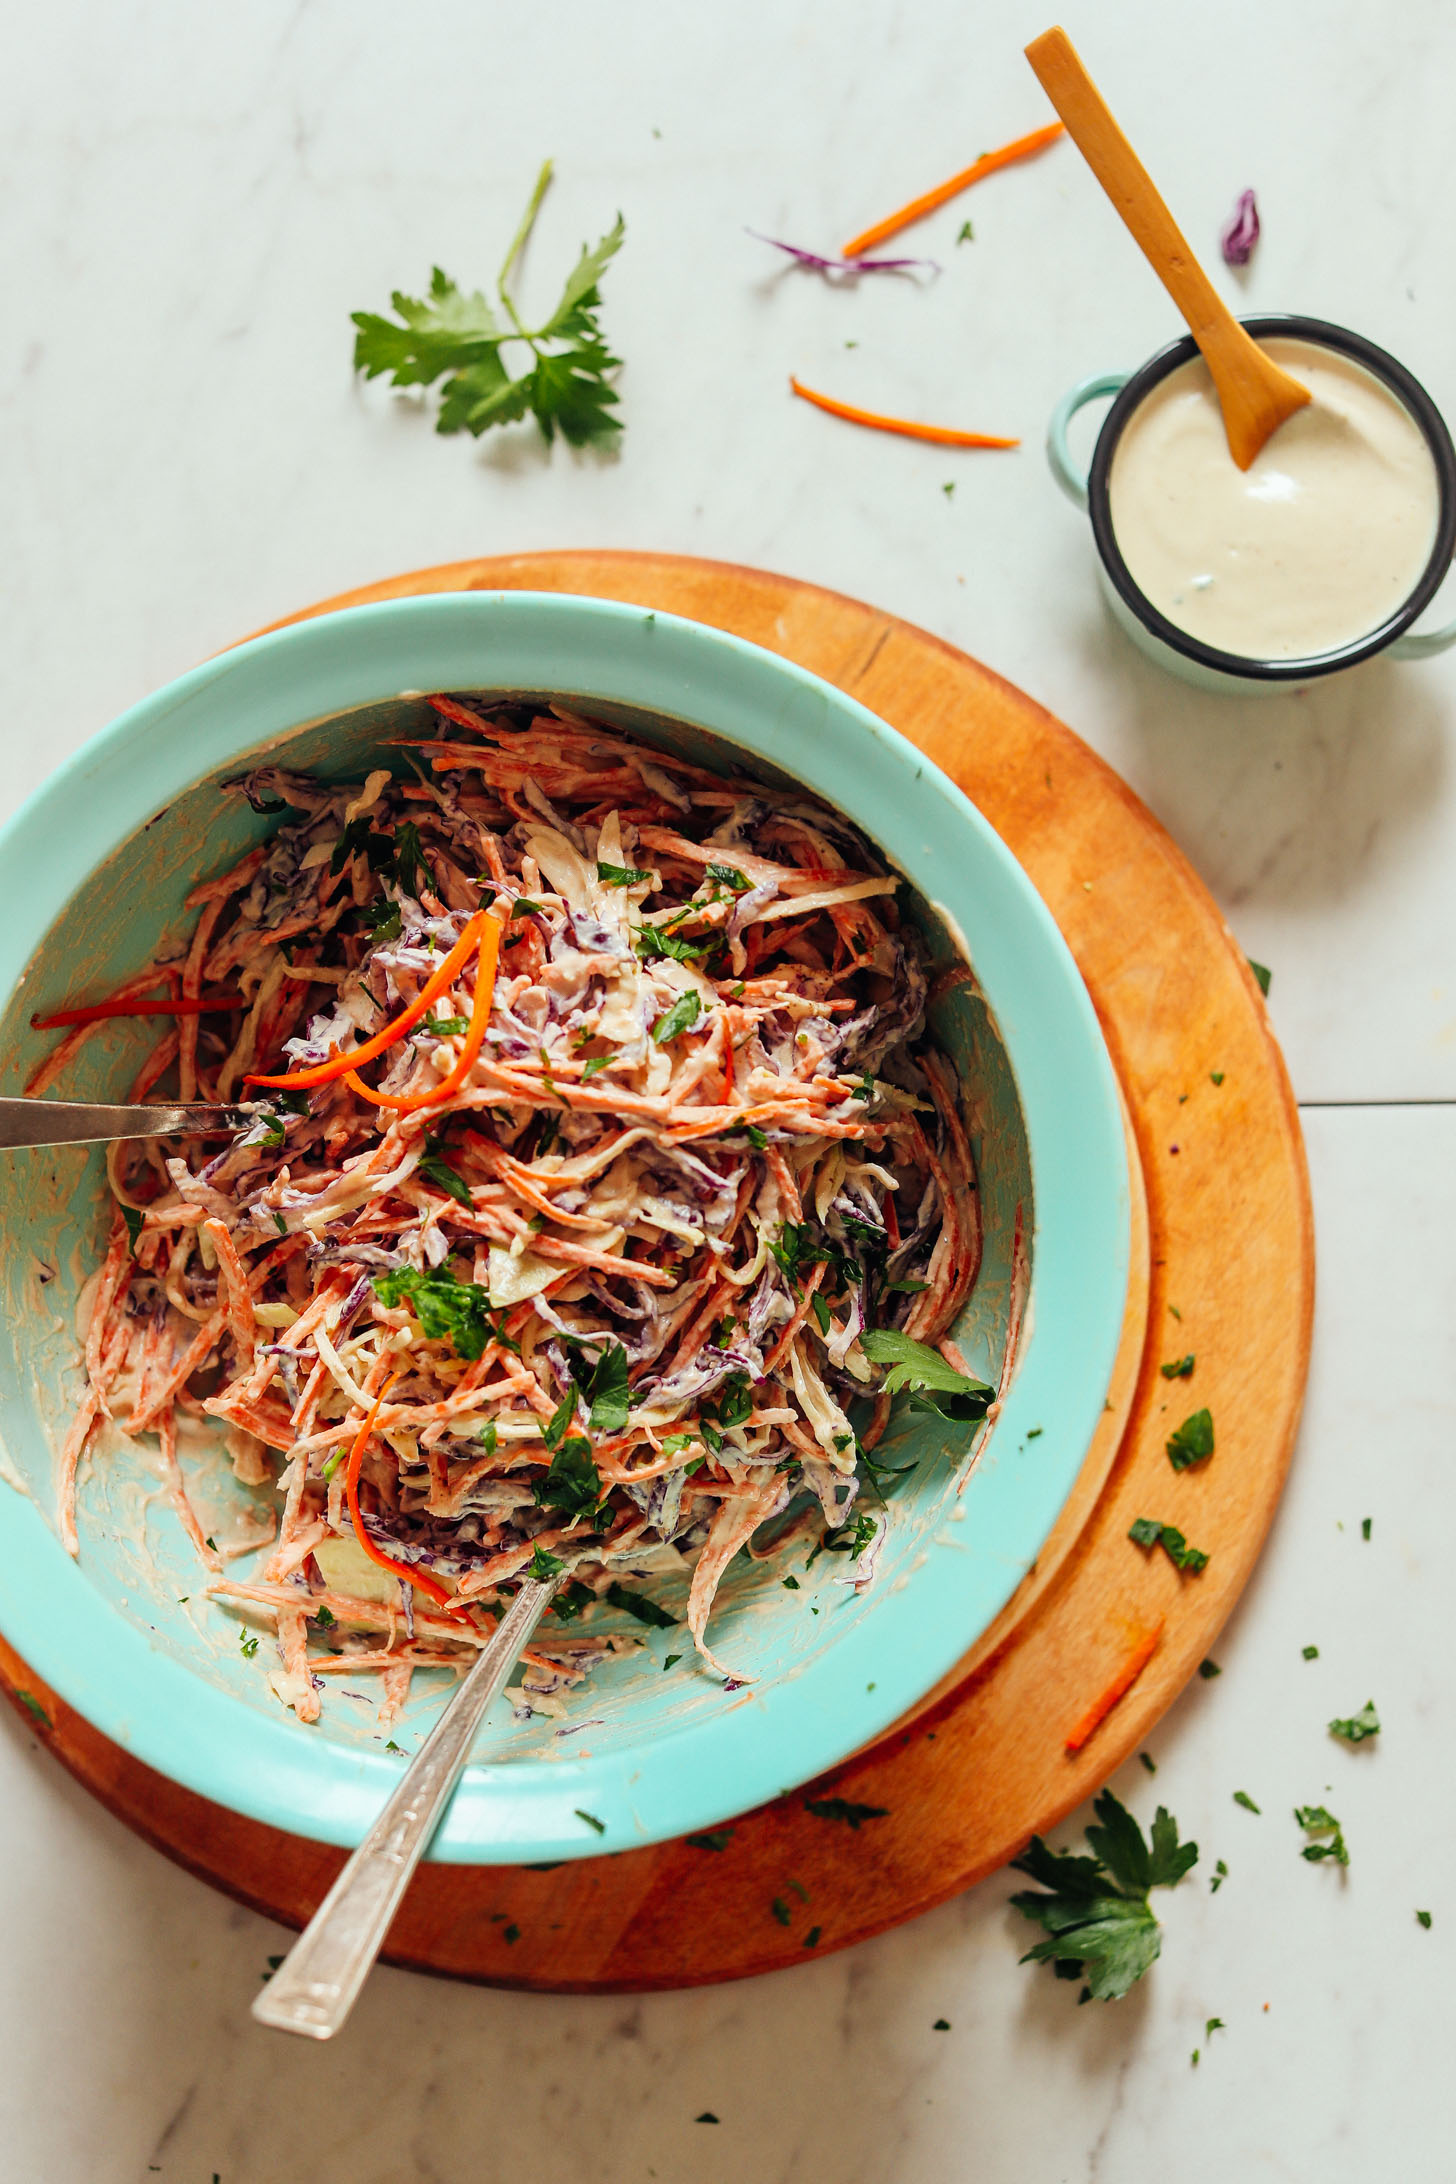 Big bowl of our fresh and delicious homemade vegan coleslaw